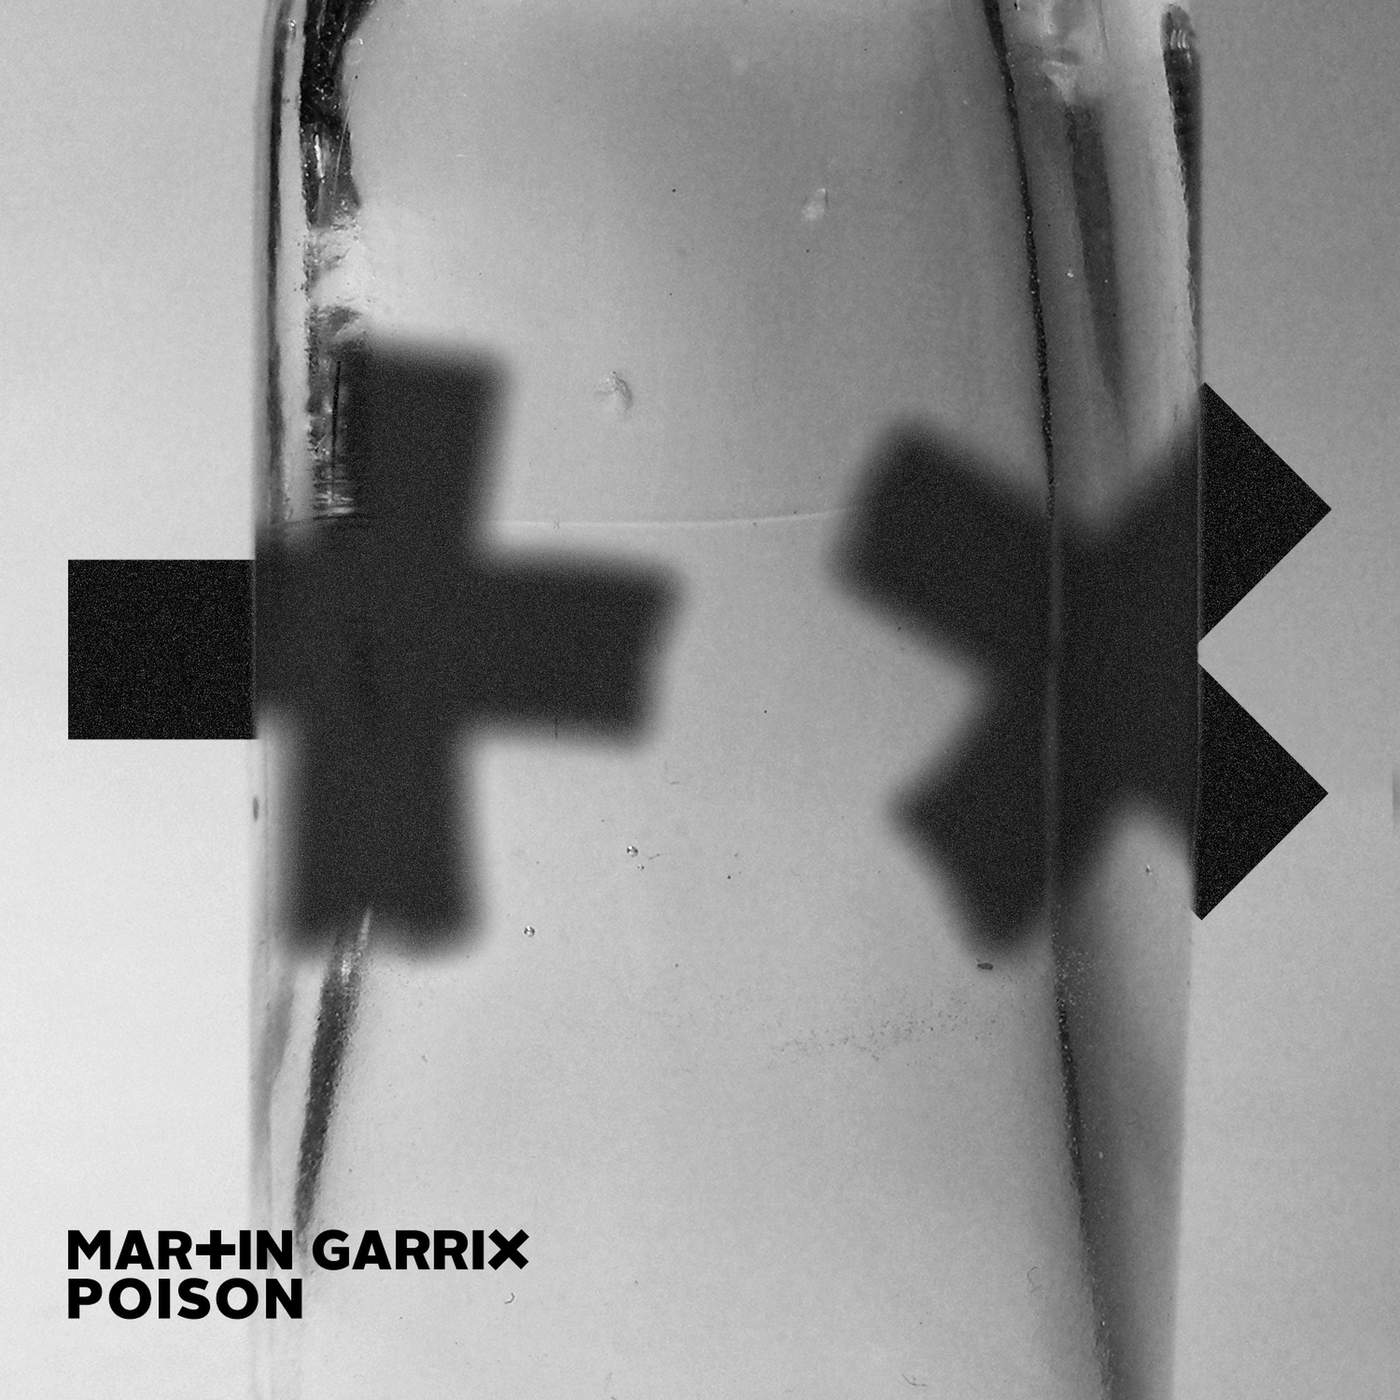 Martin Garrix - Poison - Single Cover